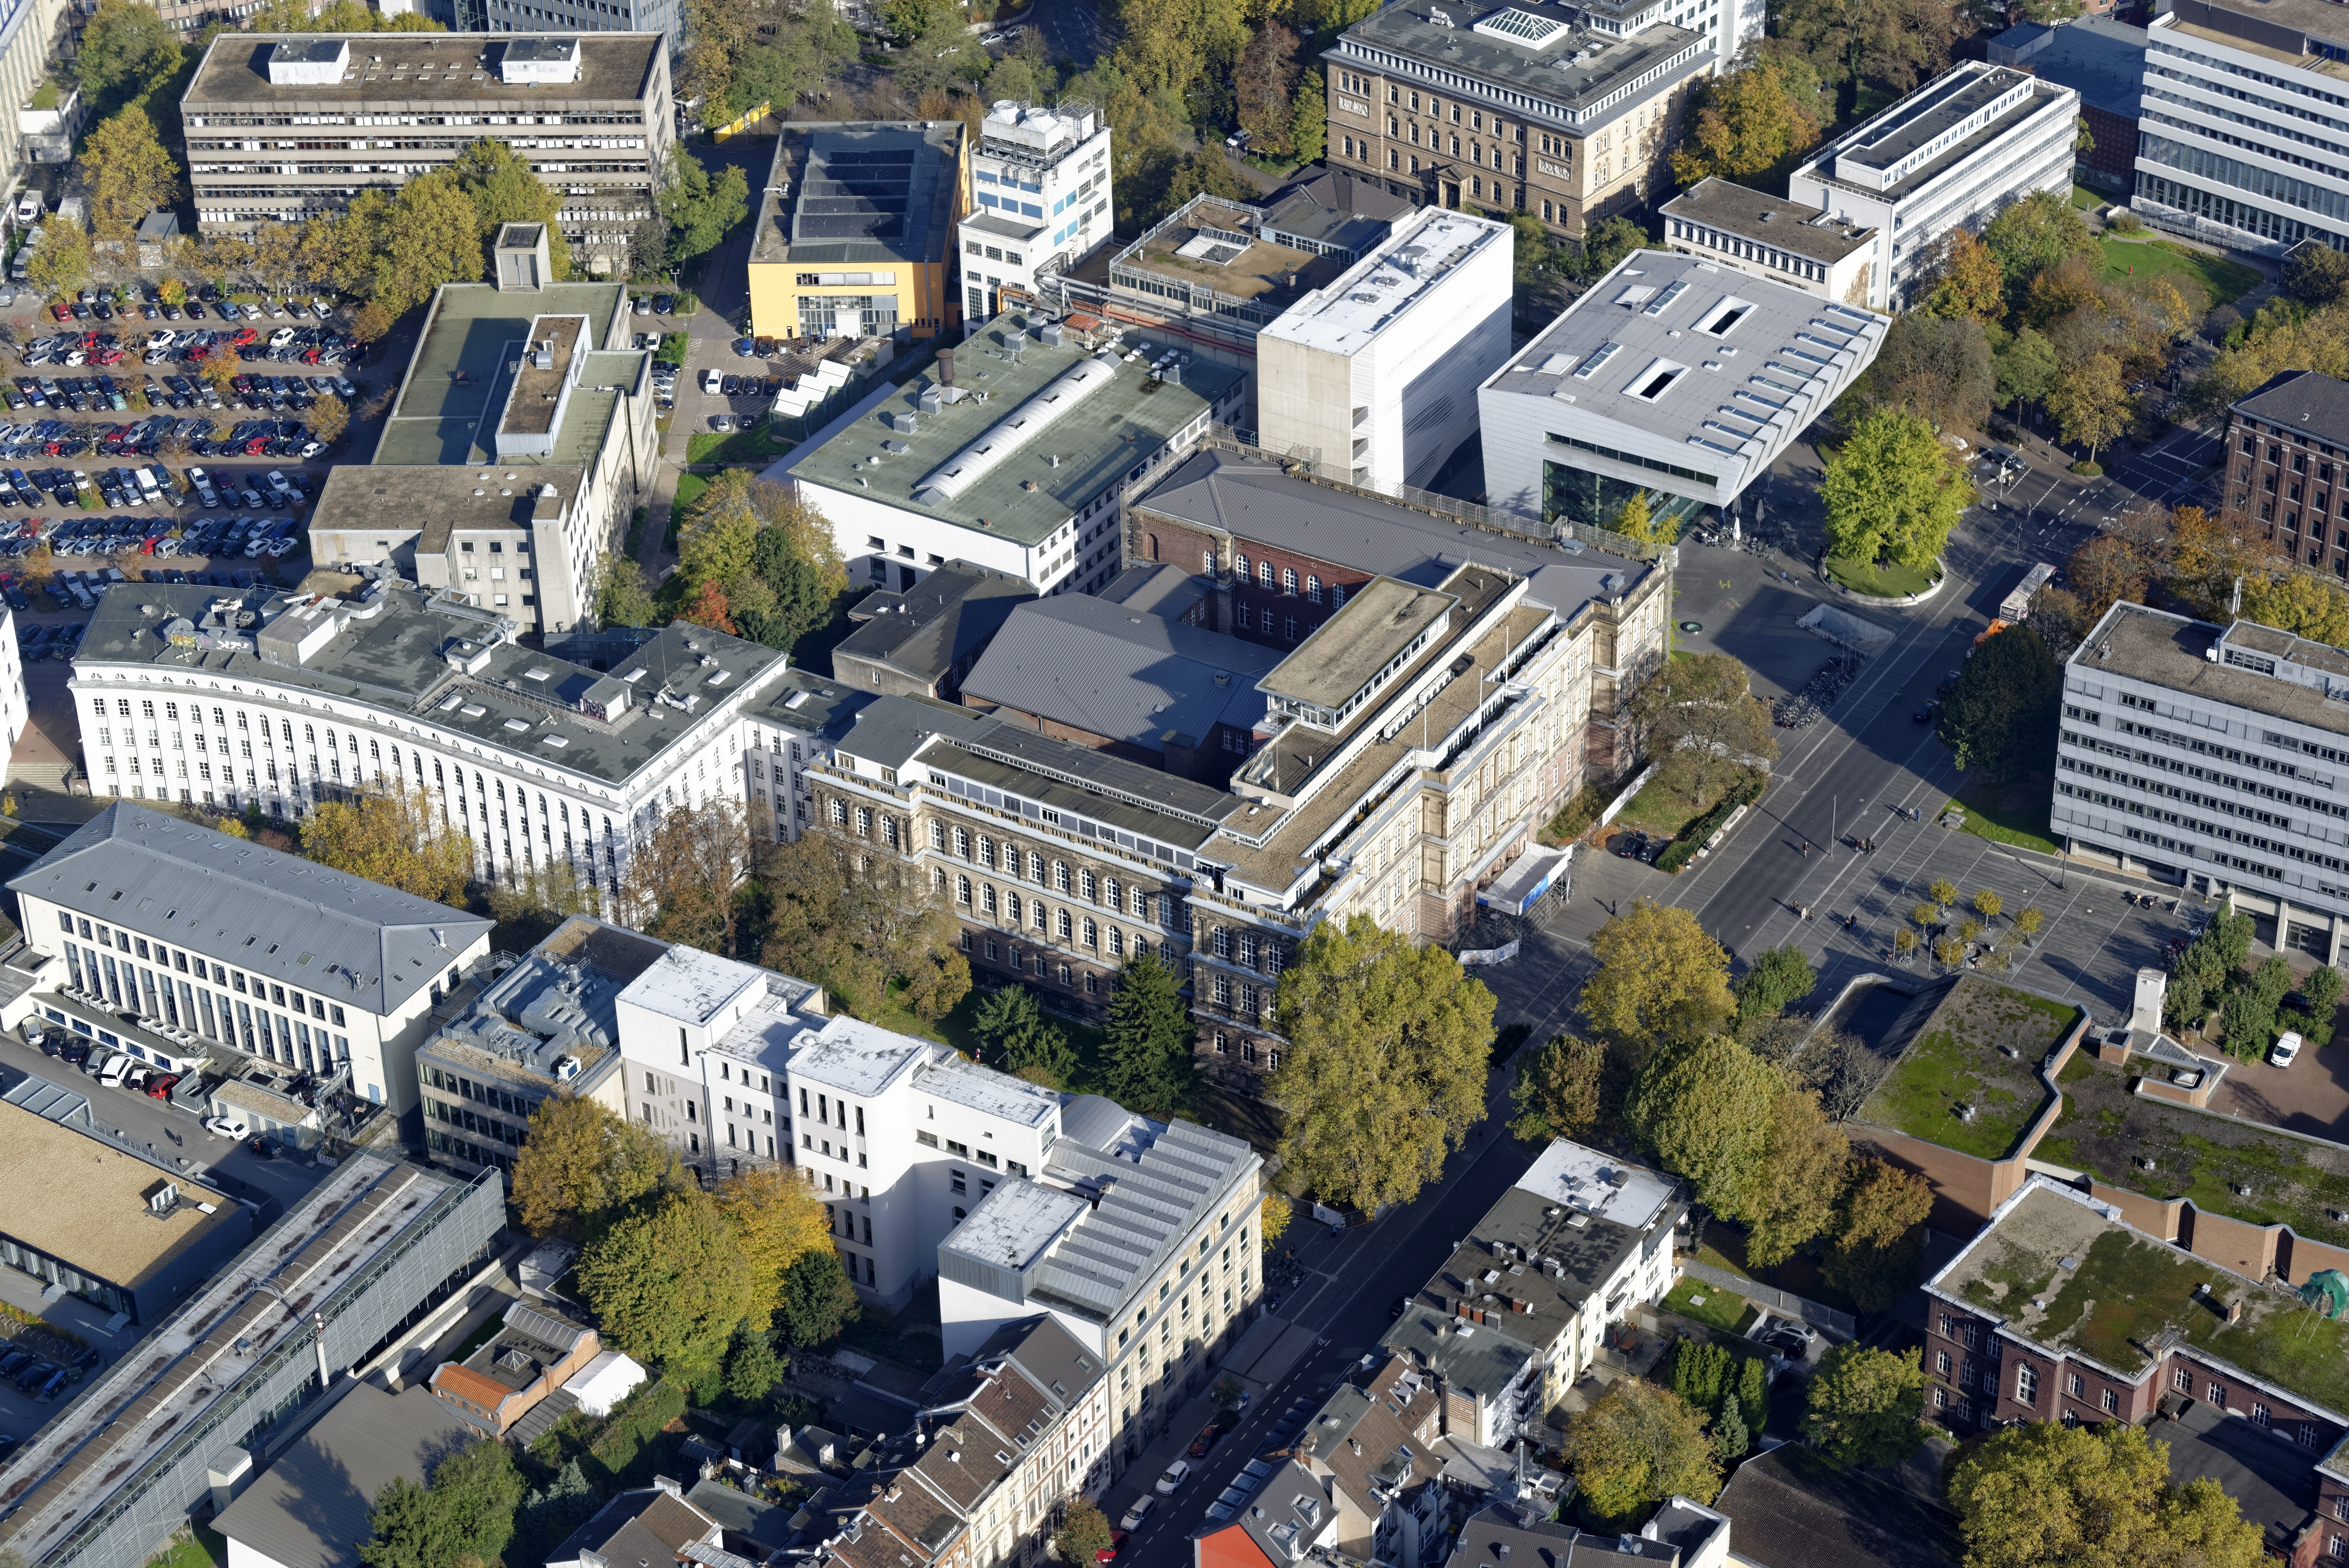 Main Campus with Hauptgebäude and SuperC